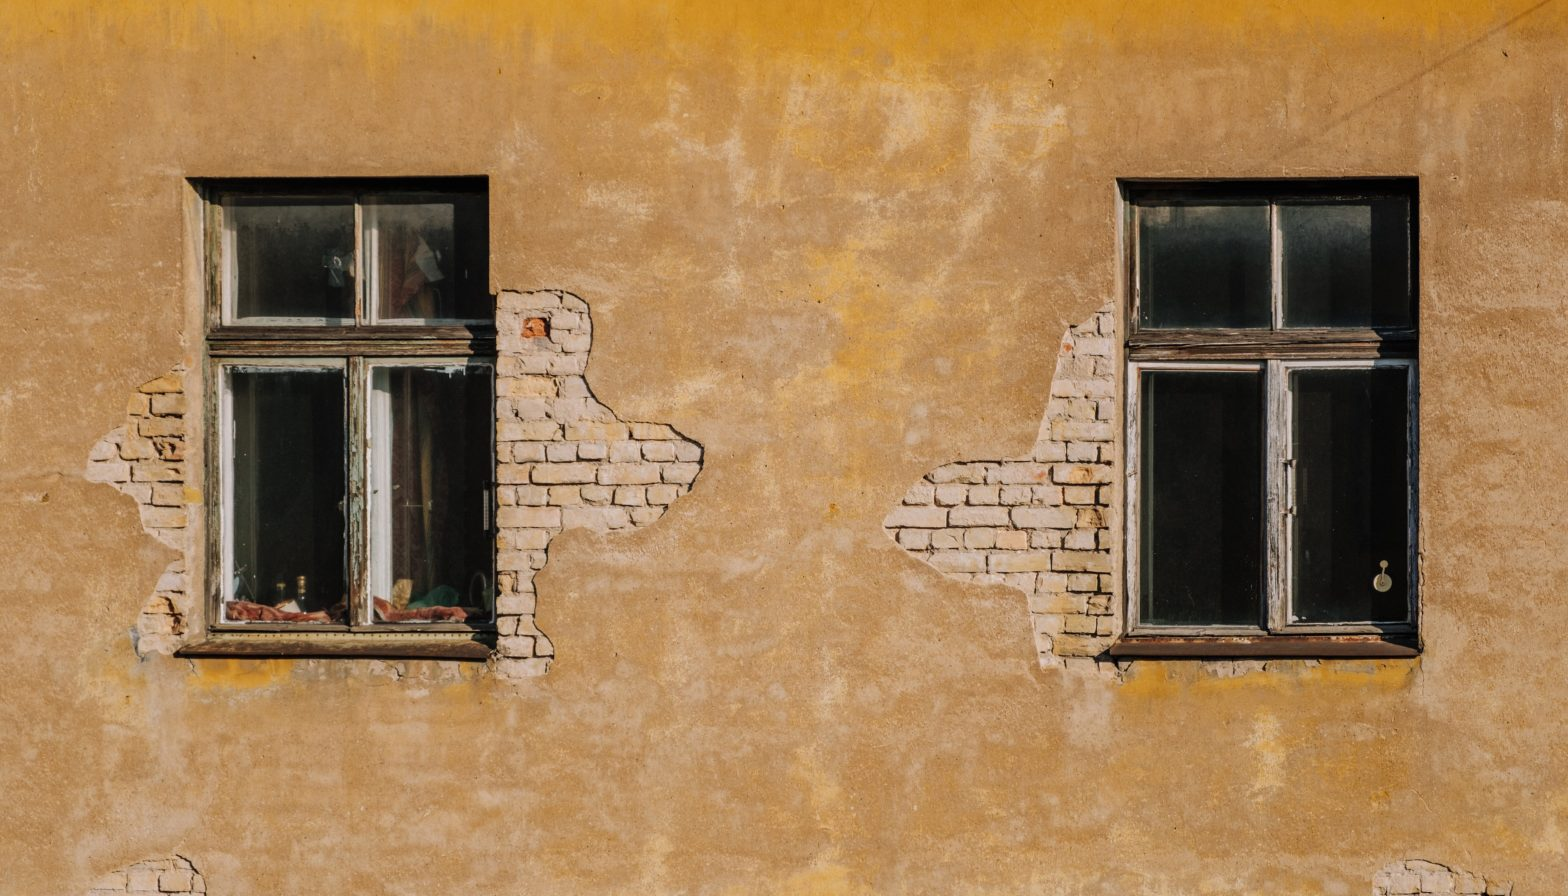 Photo of two windows of an old apartment building